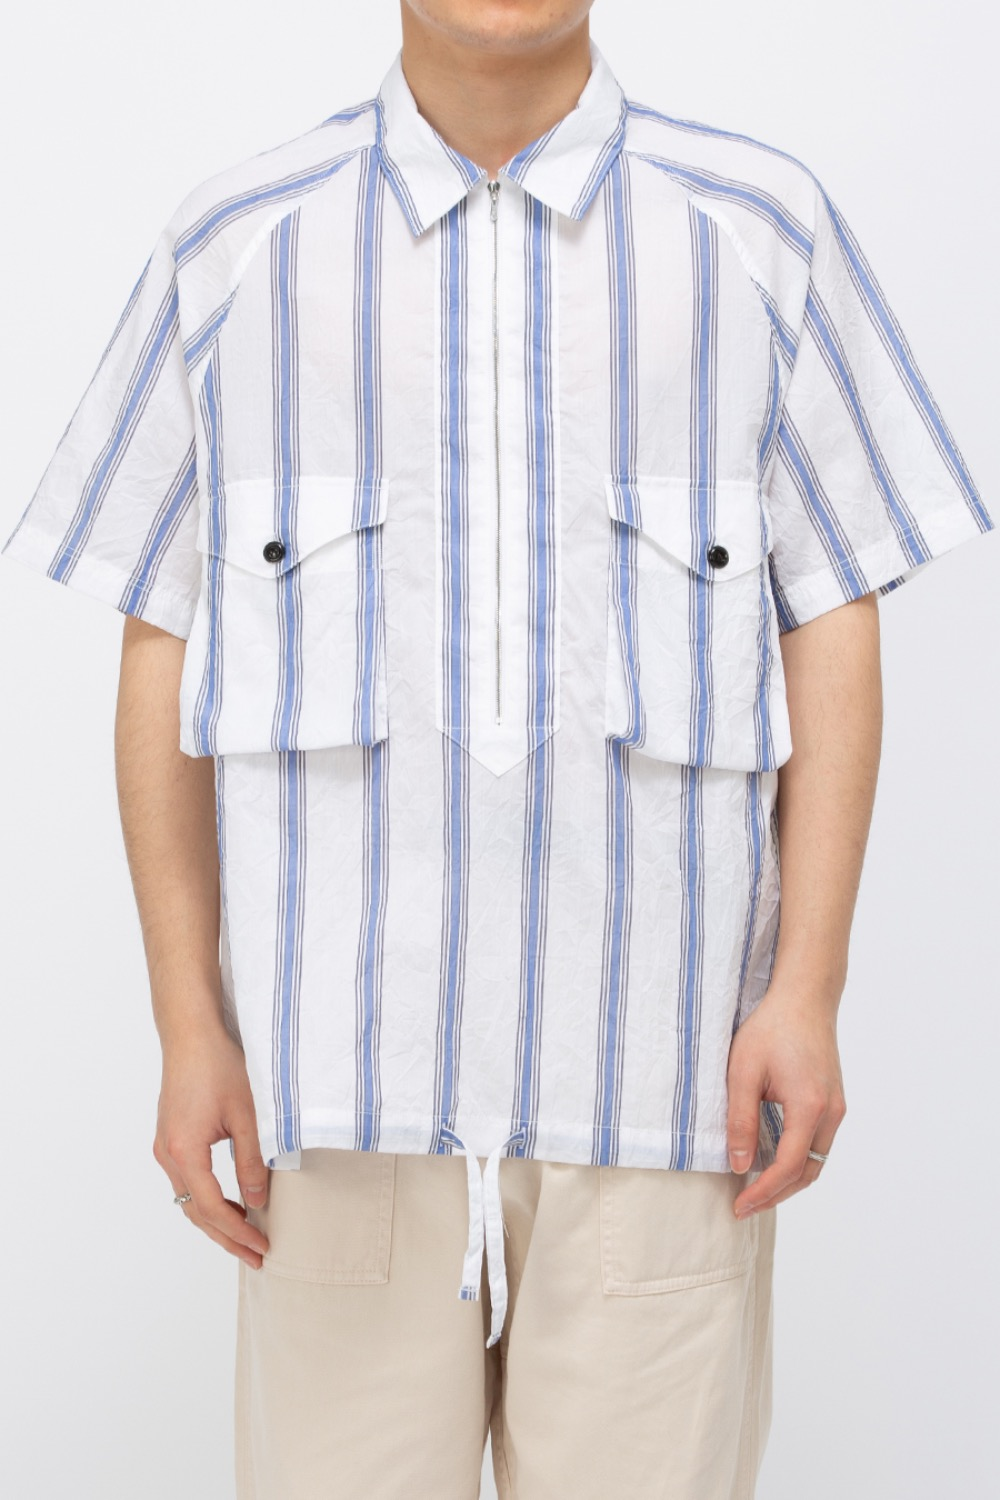 SCOUT PULLOVER HALF SHIRT CRINKLE BLUE STRIPE